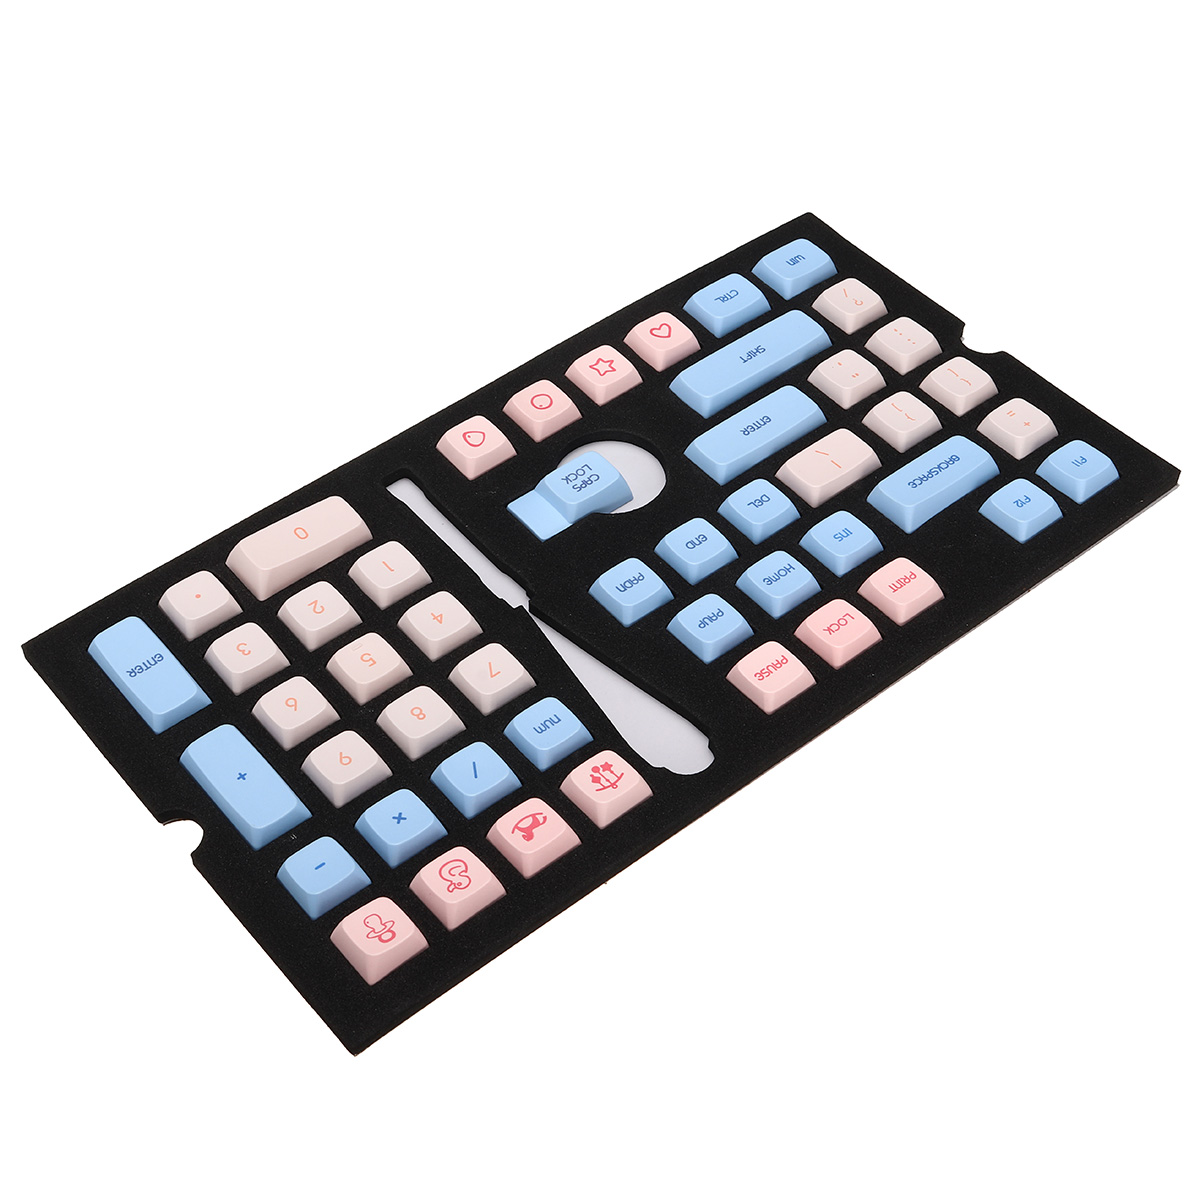 Baby Theme 104-key <font><b>Keycaps</b></font> PBT The Material Thermal Sublimation Process Keycap for Minila67 GH60/<font><b>64</b></font>/68 660m 980m image